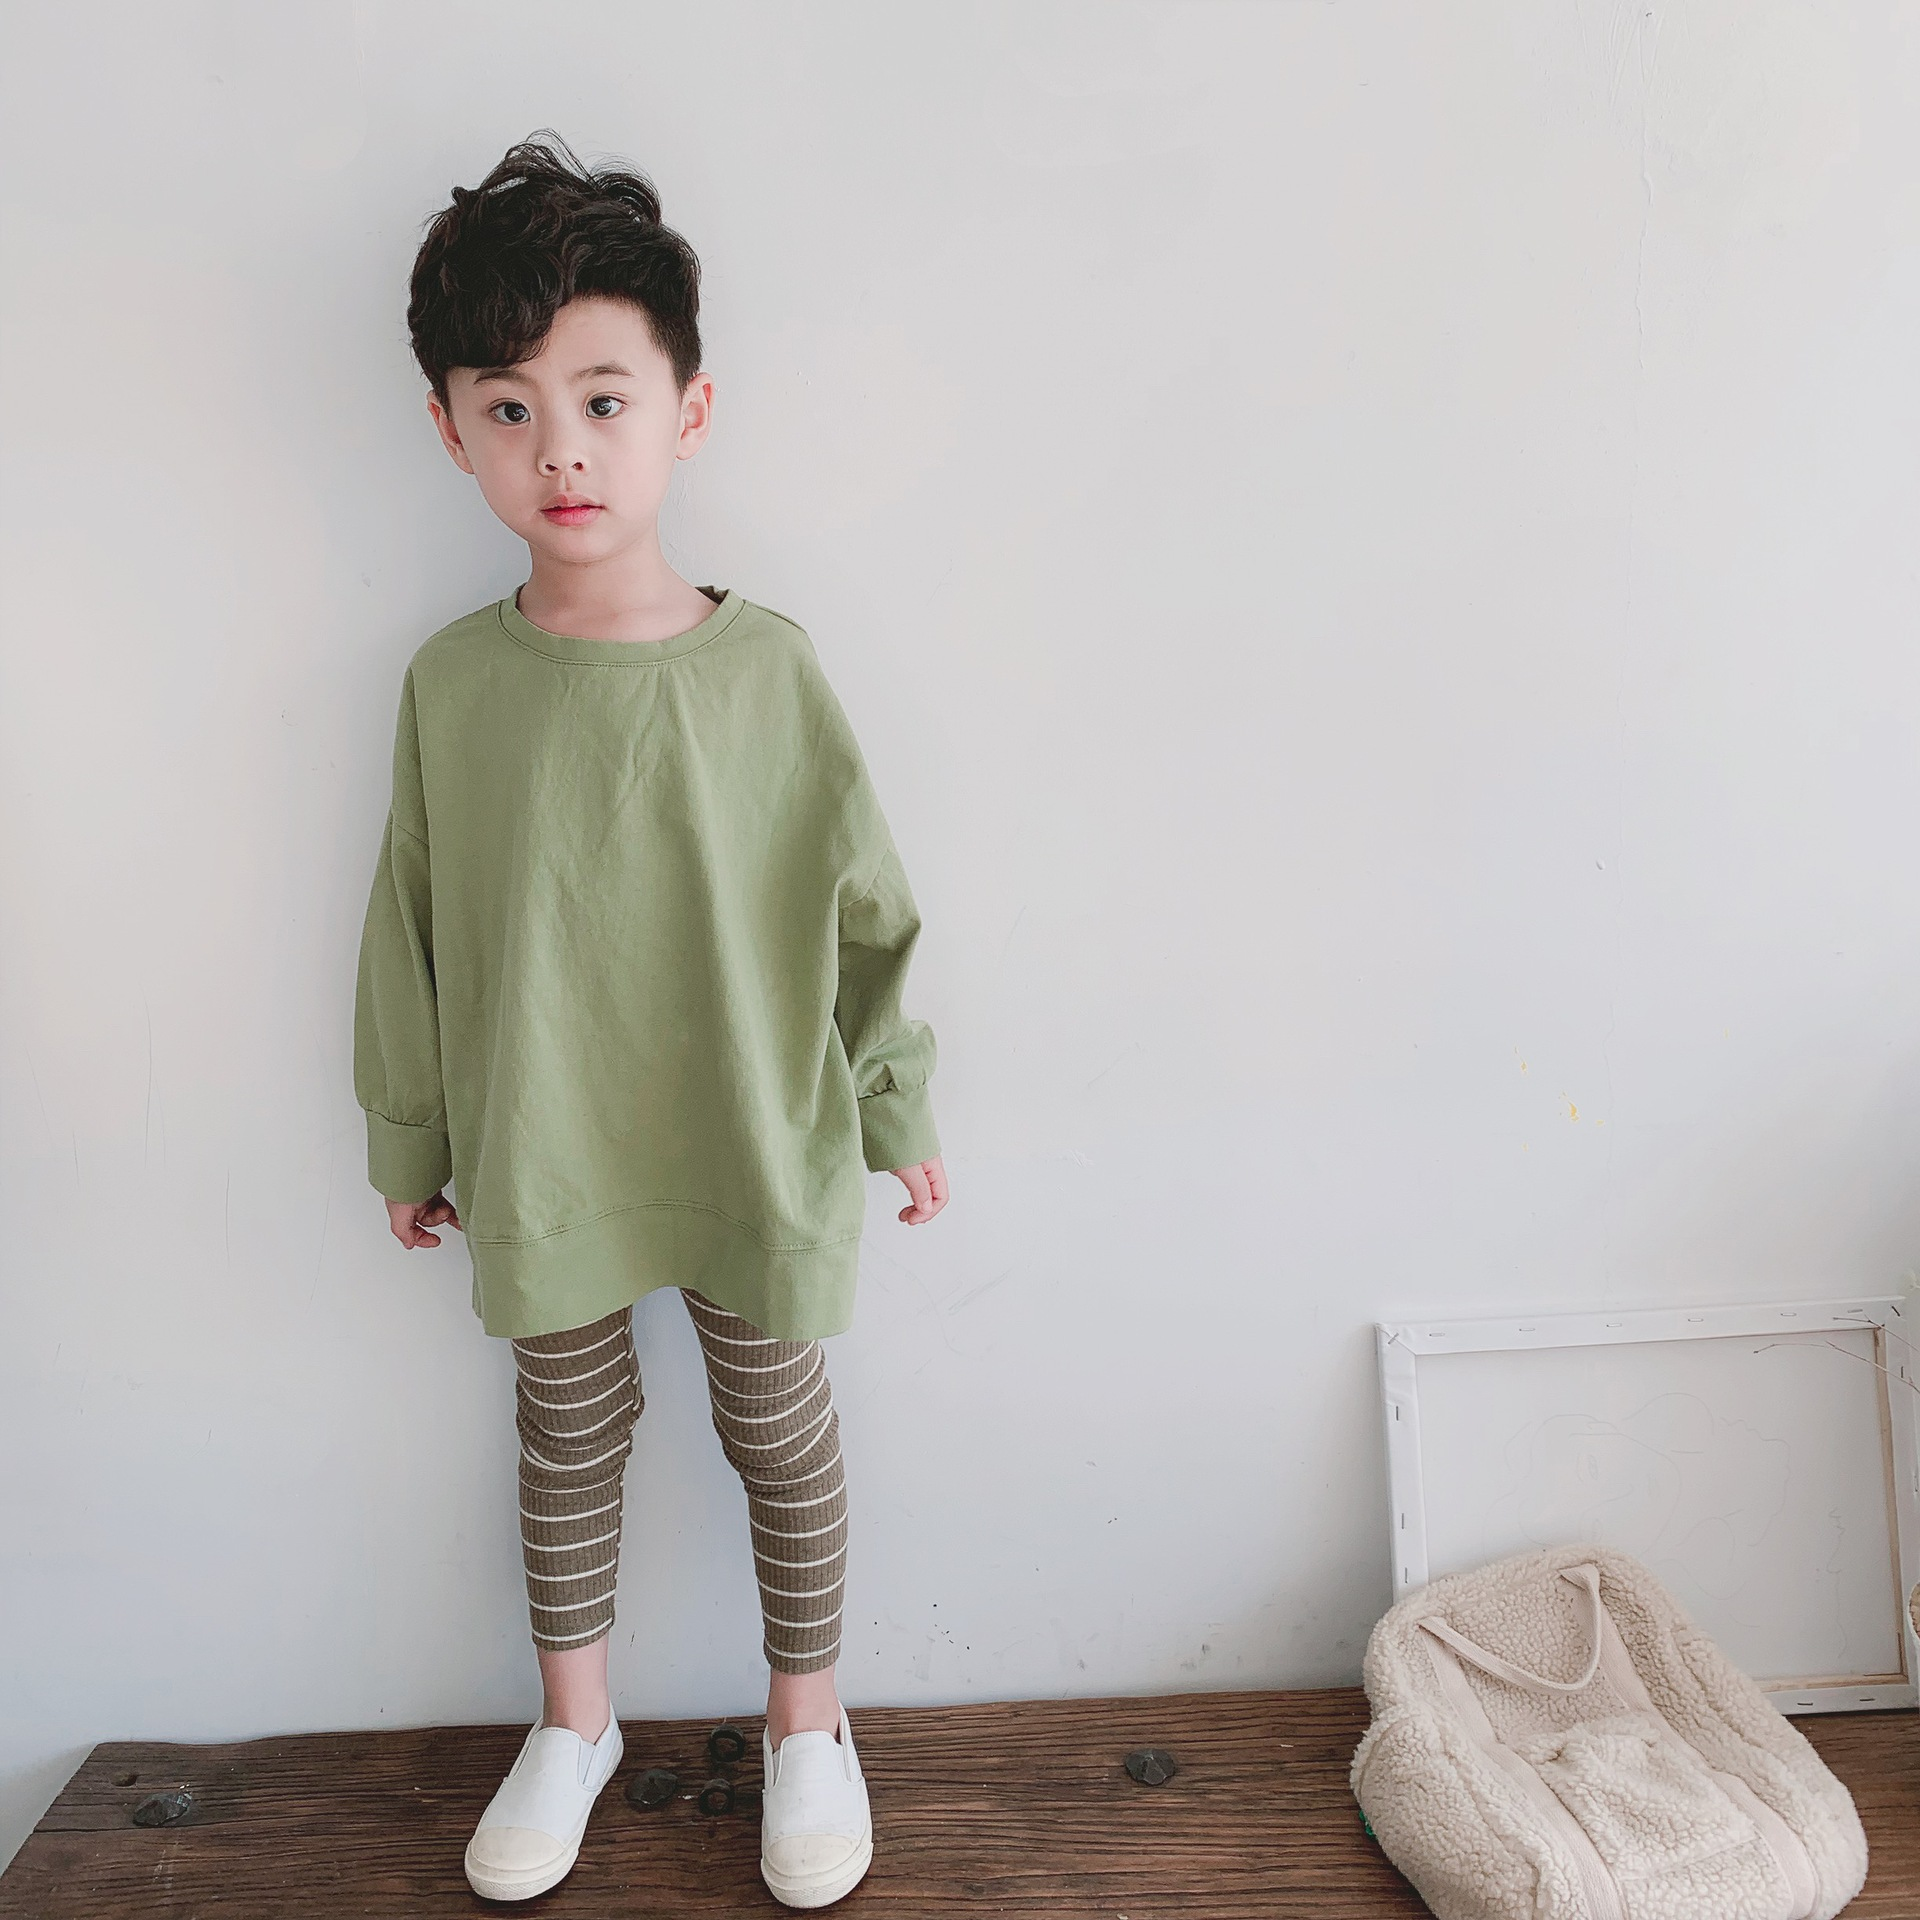 Spring Boy Girl Clothes T-shirt  Long Sleeves  Pinkycolor  Sweet Cotton O-Neck  Cotton  Casual  Fashion